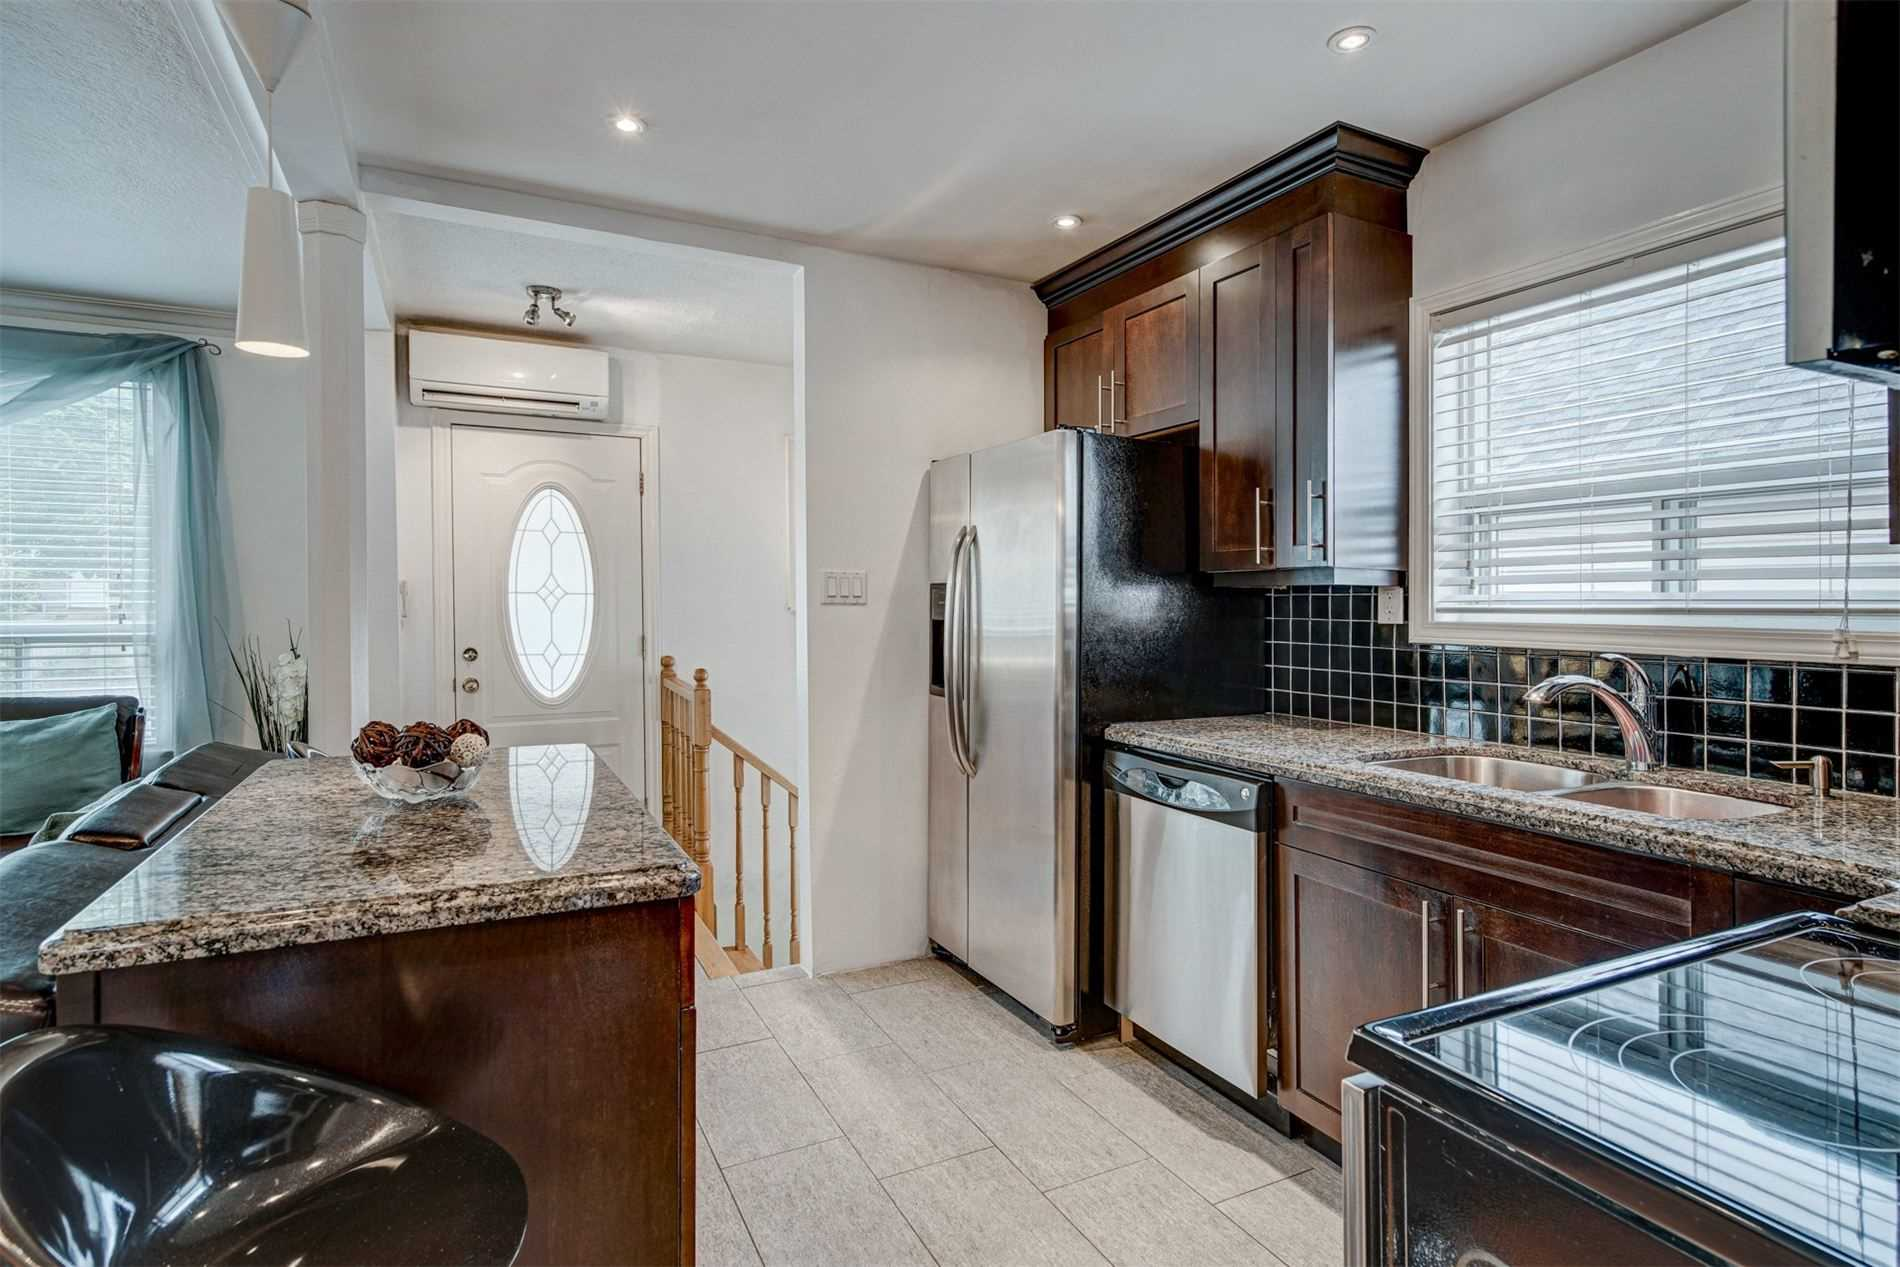 554 Caledonia Rd - Caledonia-Fairbank Detached for sale, 2 Bedrooms (W5305900) - #13